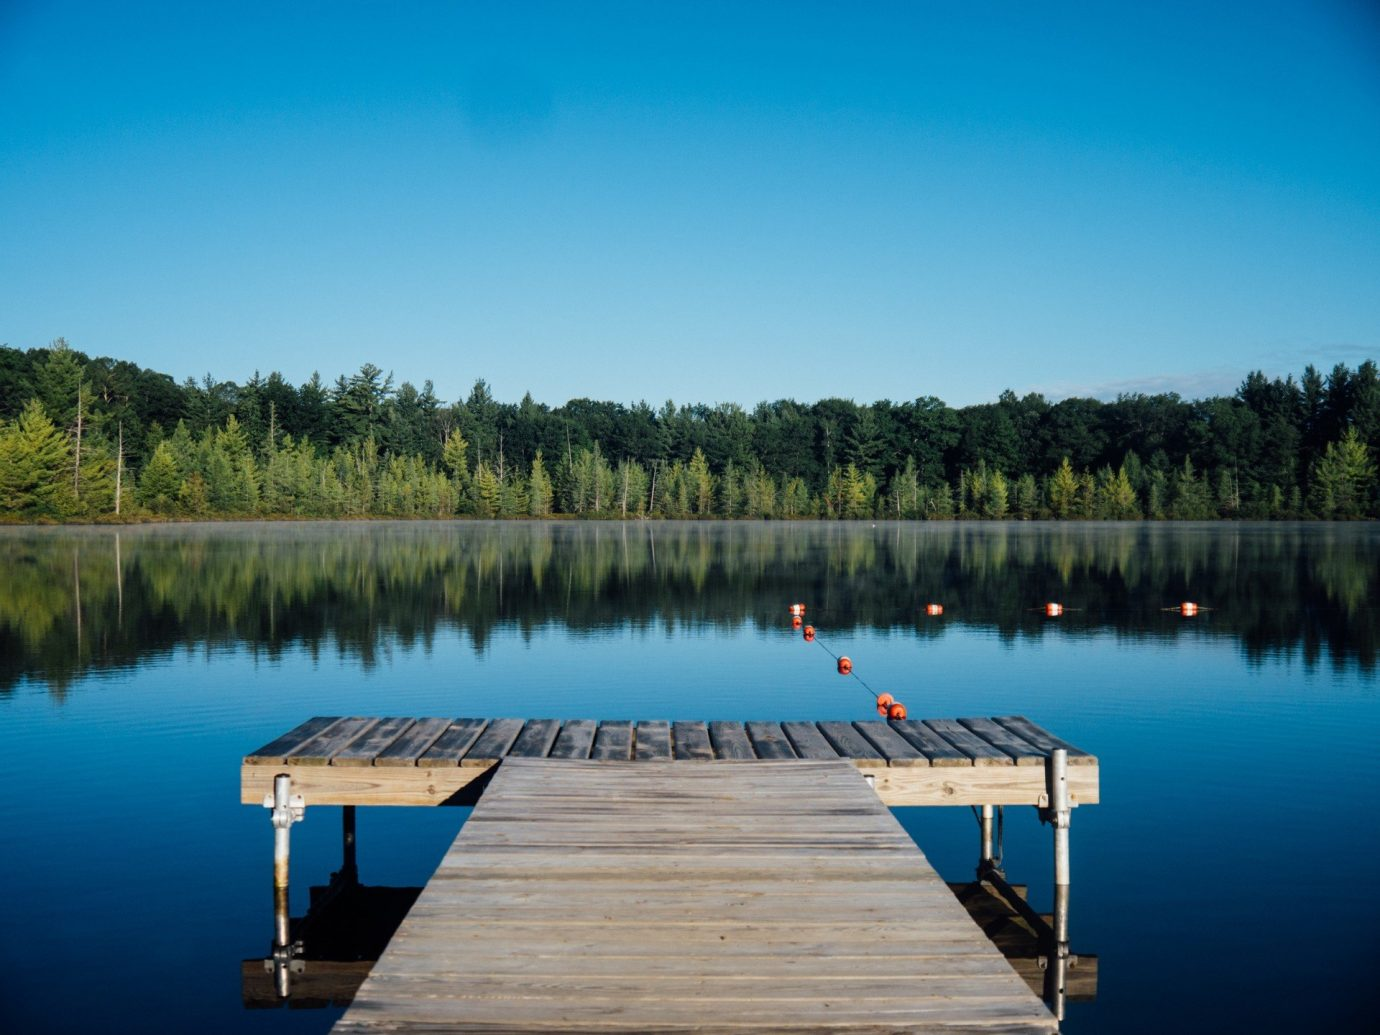 calm dock fresh Greenery isolation Lake Nature Outdoors reflection remote Scenic views serene trees Trip Ideas water tree outdoor sky body of water swimming pool reservoir dusk Sea wood surrounded day